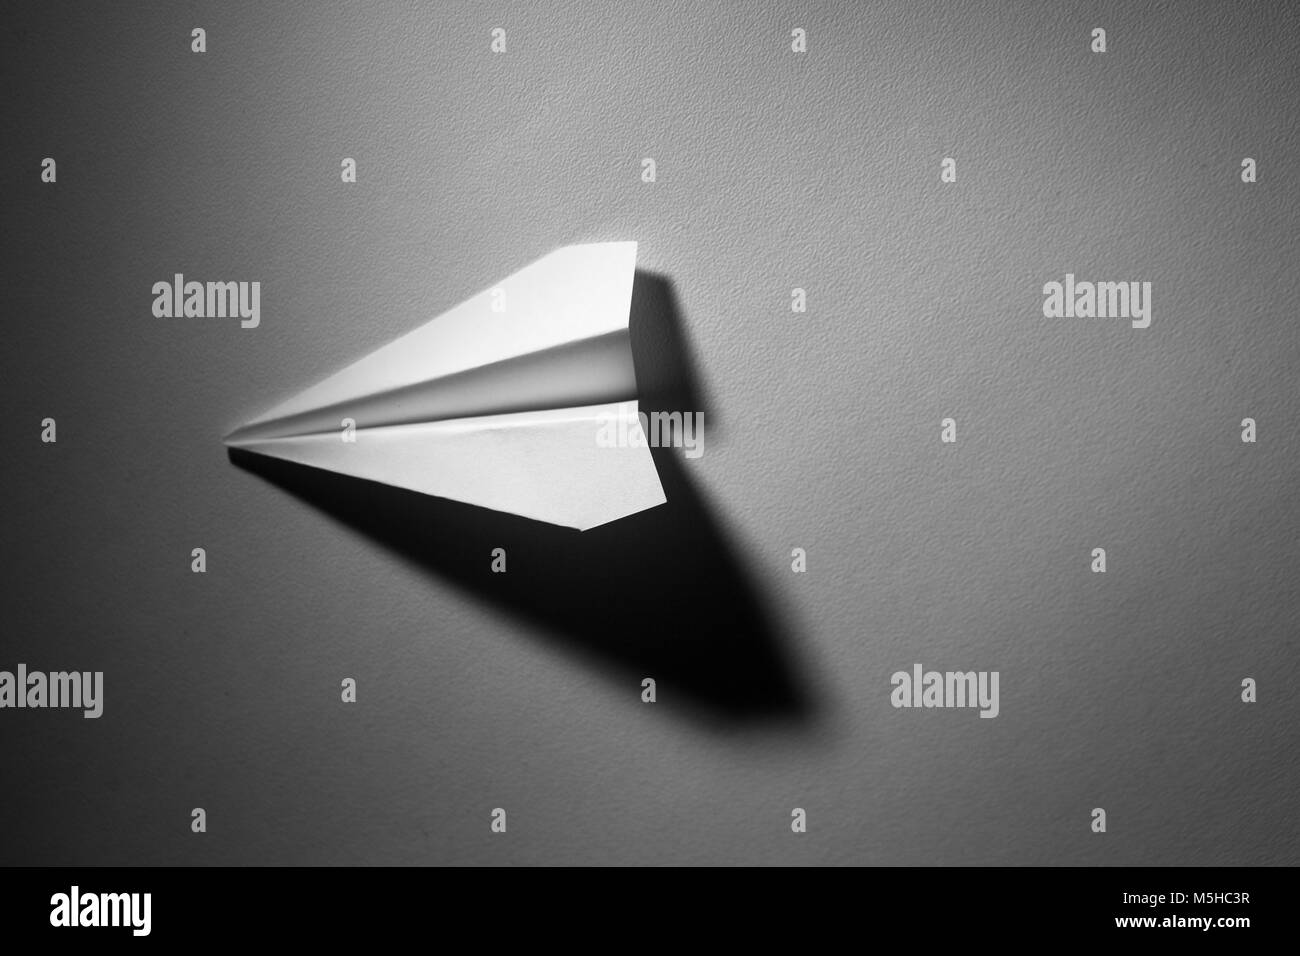 The paper plane with a dramatic light - Stock Image